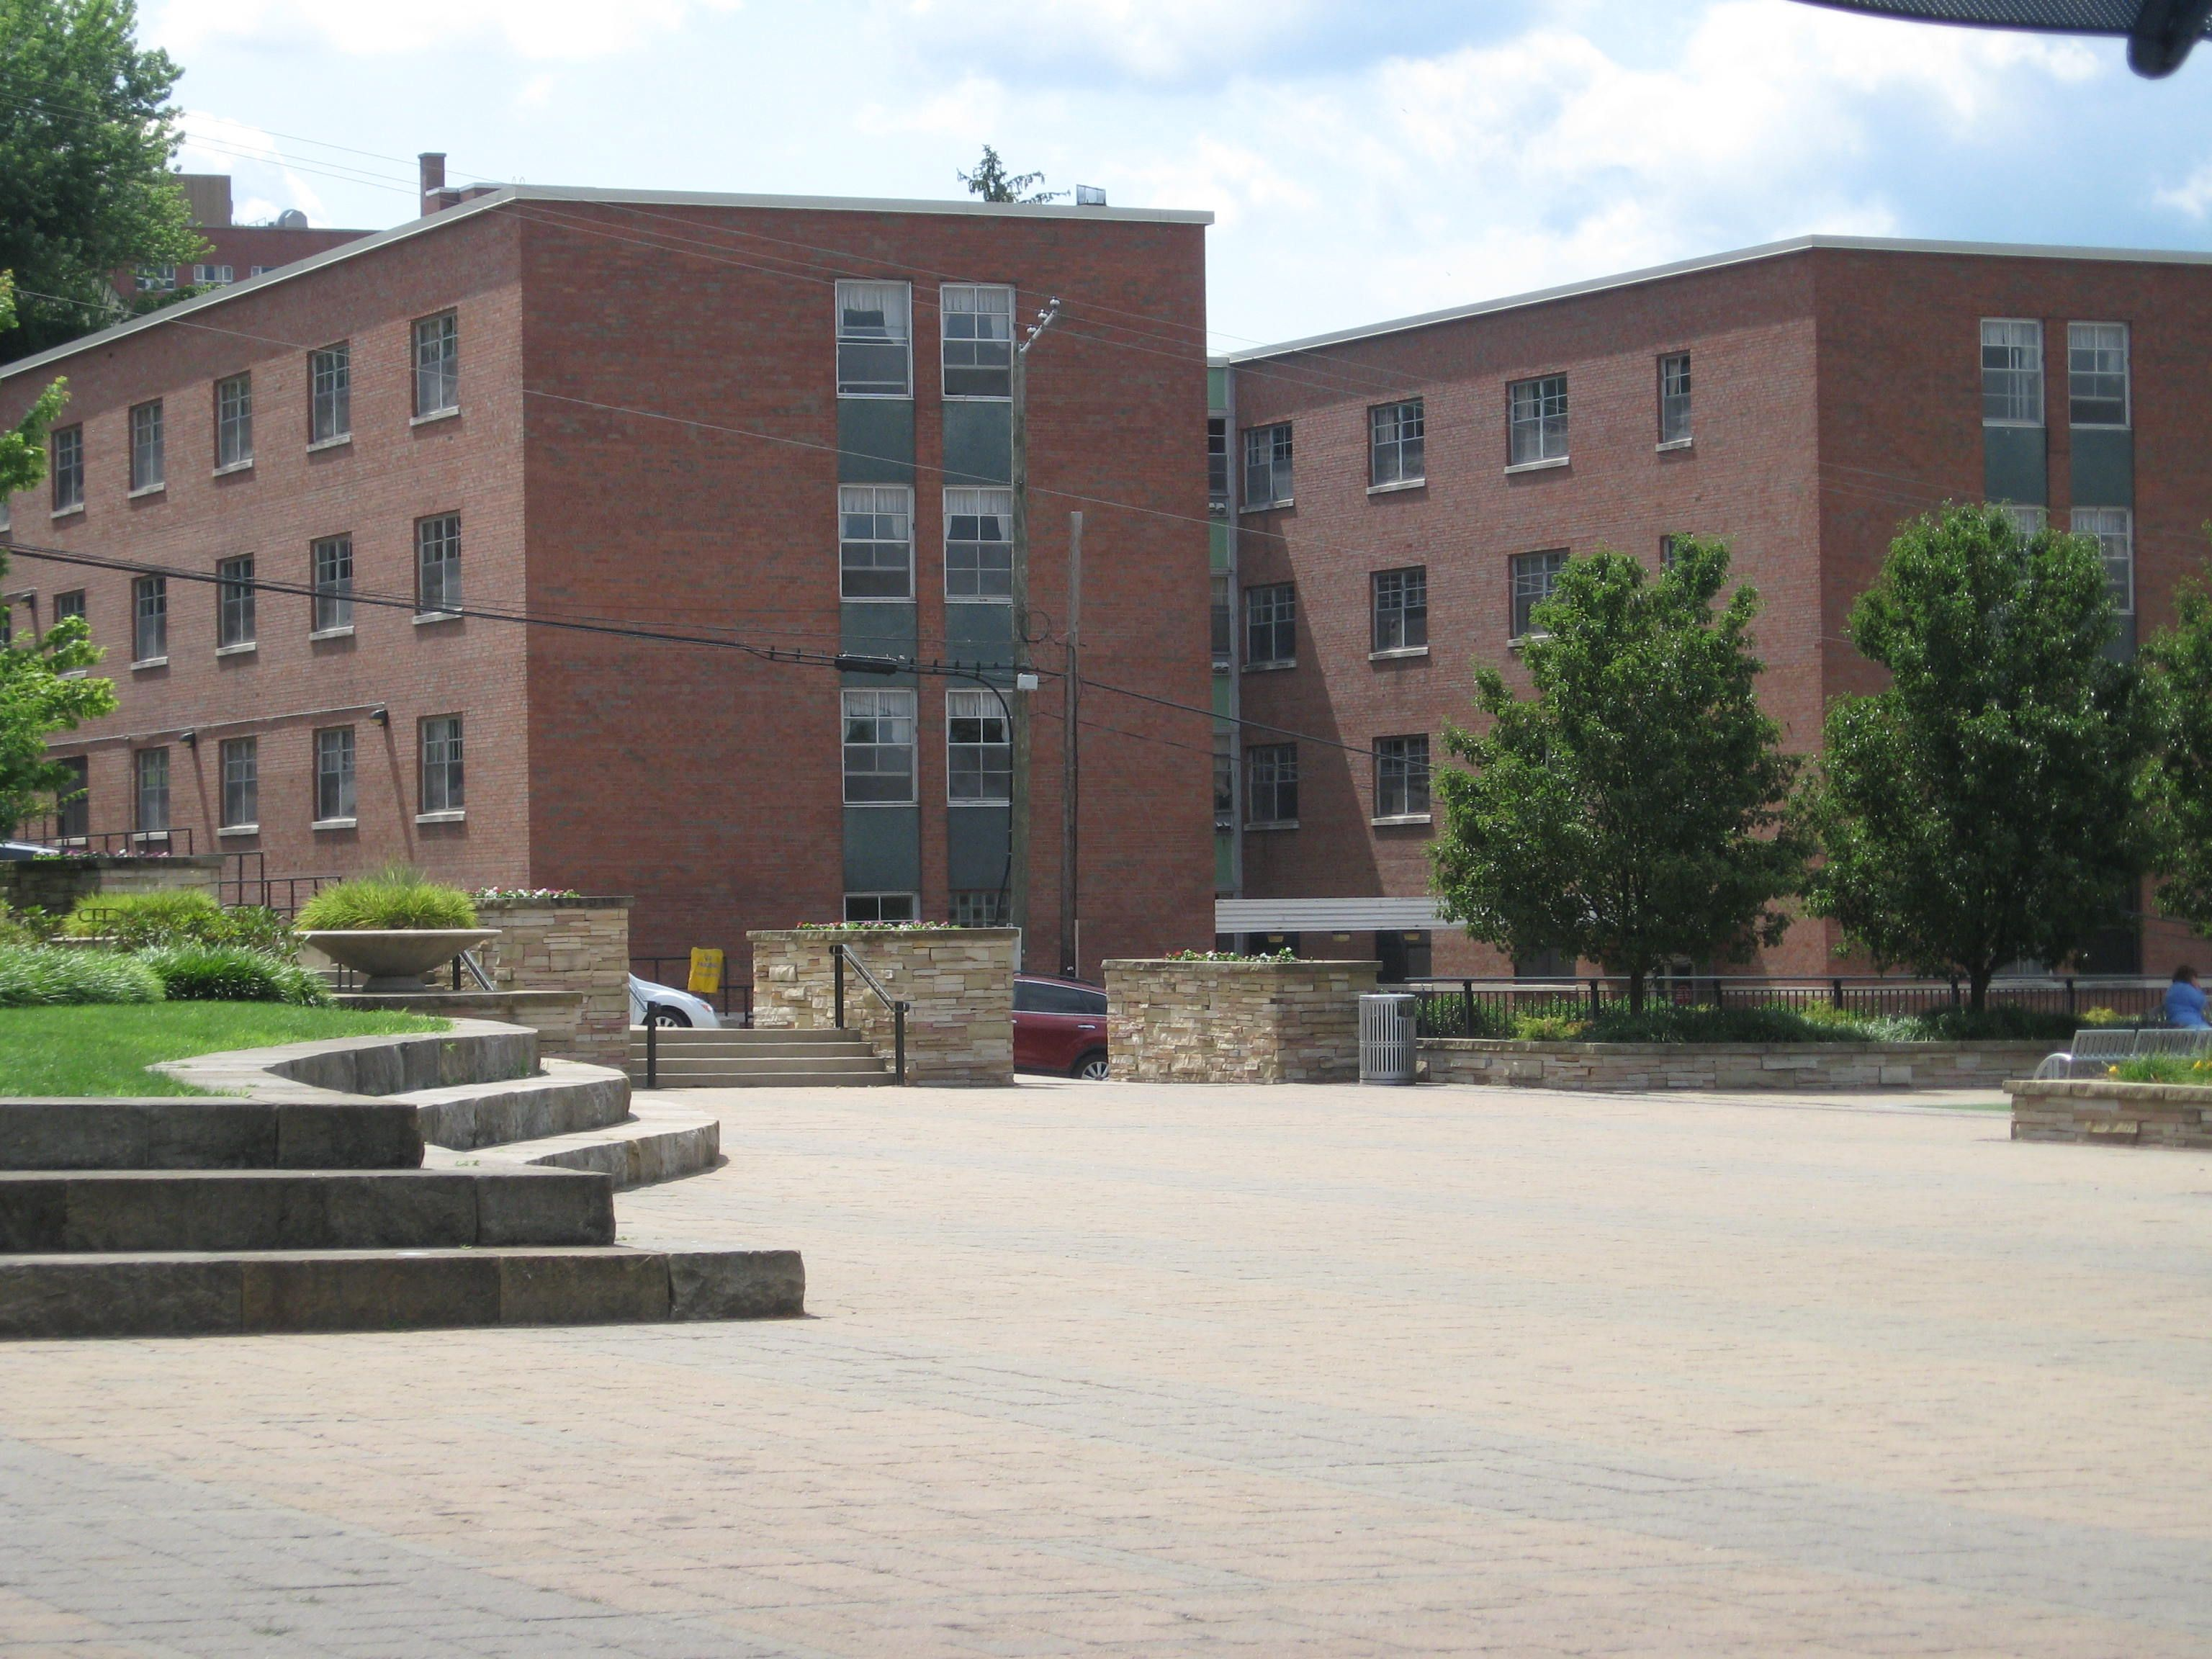 Boreman North And South Ahhh My Old Stomping Grounds Lol West Virginia West Virginia University Virginia